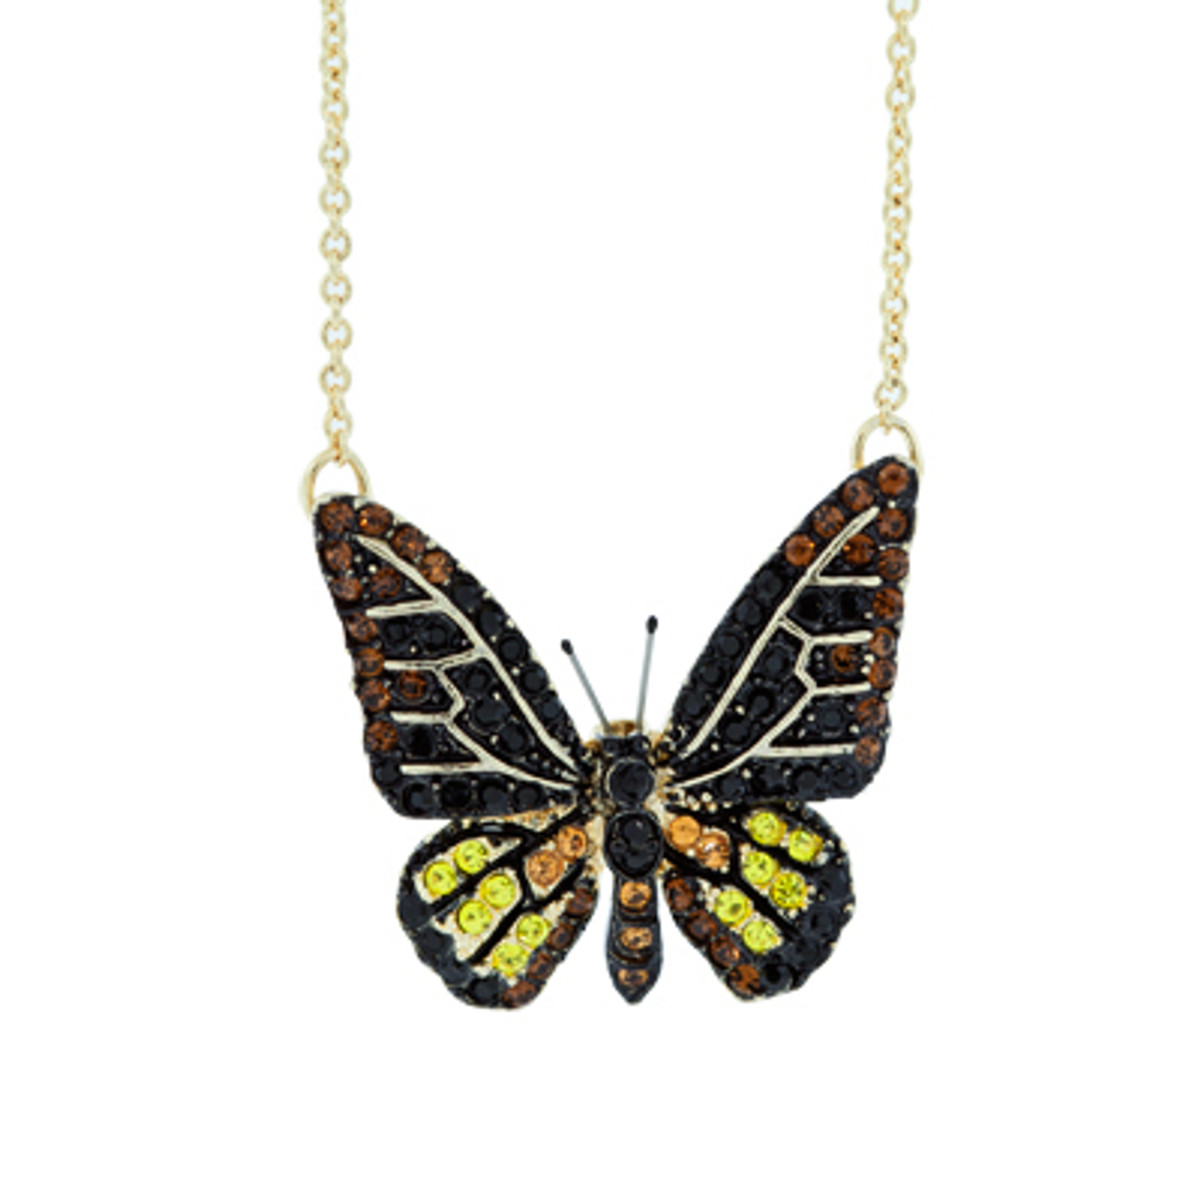 A Lovely Small Crystal Butterfly Necklace Yellow Necklace From Andrew Hamilton Crawford Jewelry